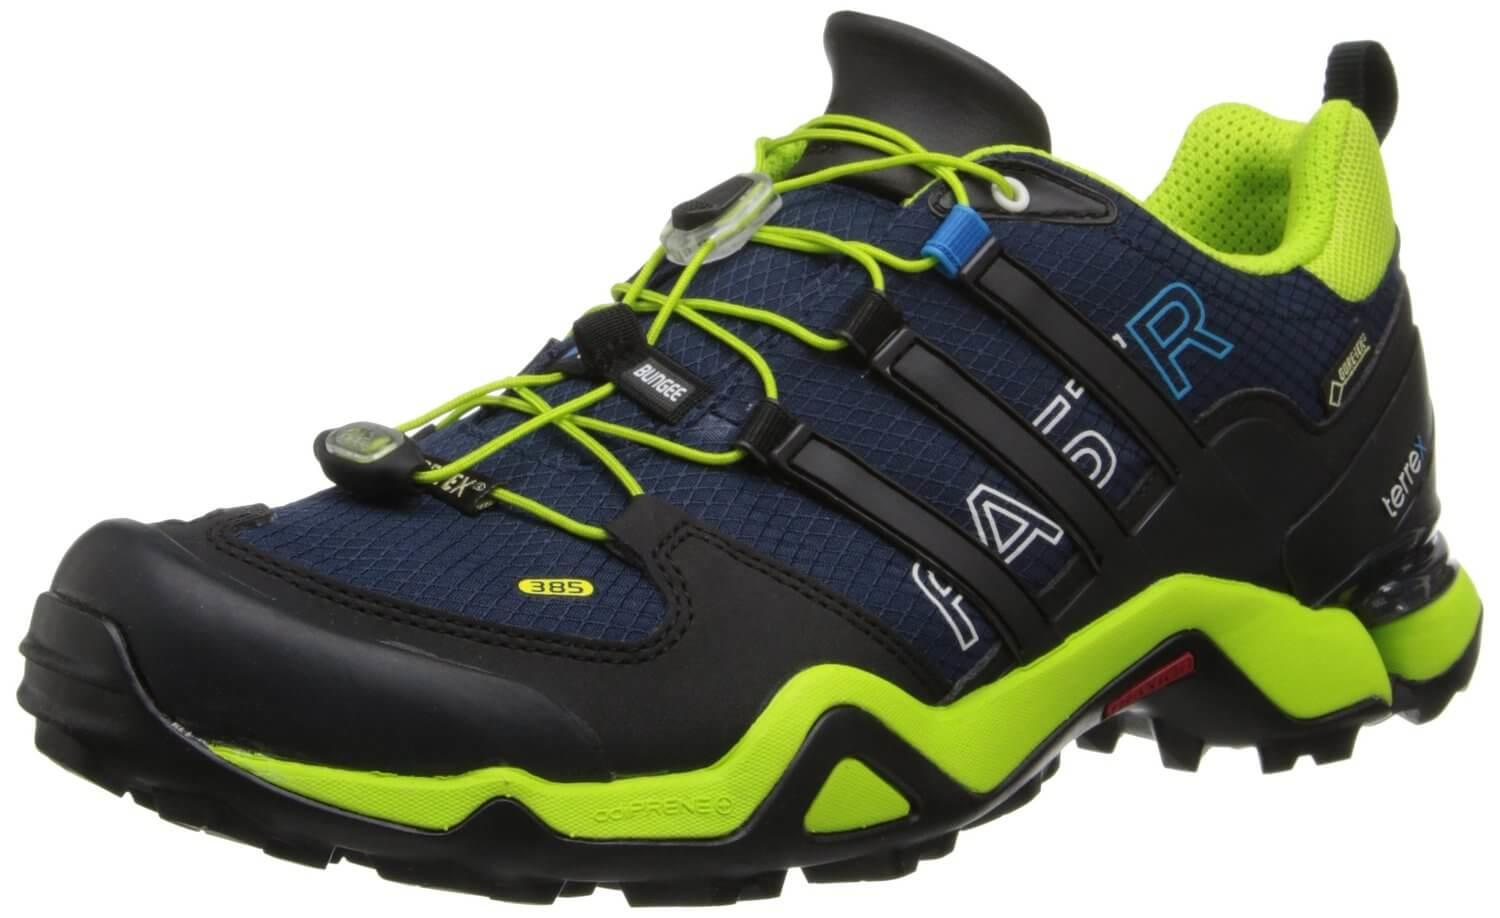 7a04e3542ec The Adidas Terrex Fast R GTX is a shoe designed for use on trails and  mountain ...